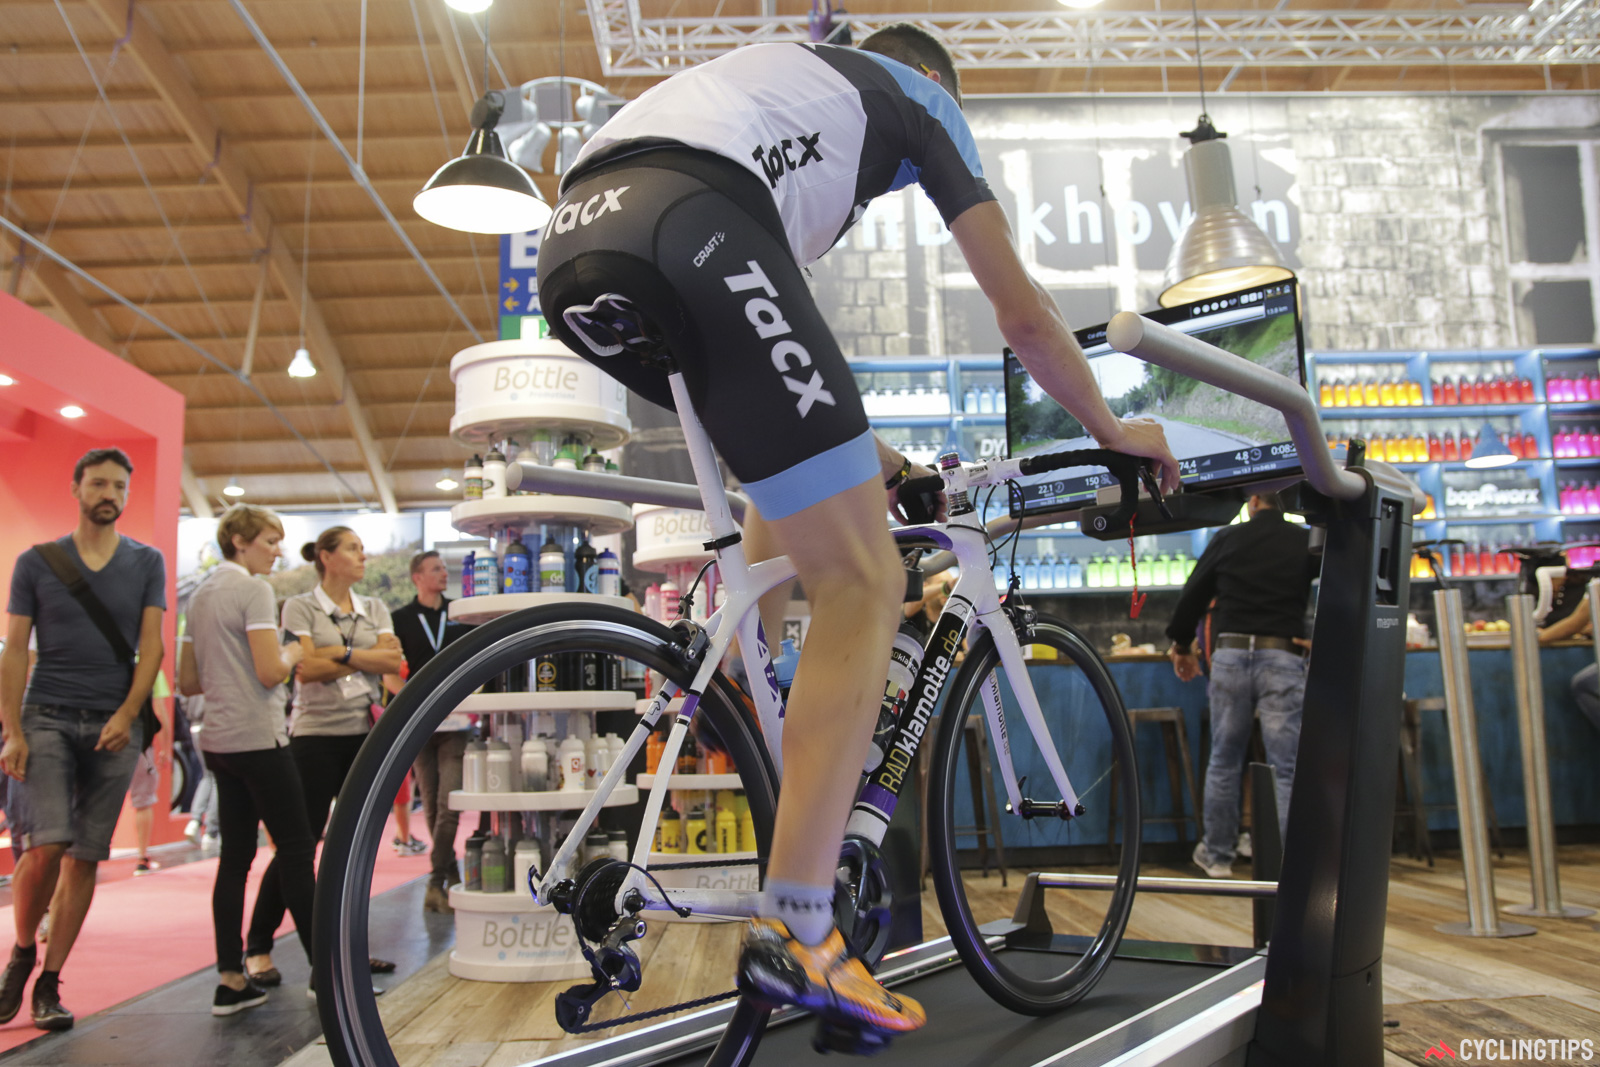 Tacx has this new interactive indoor trainer. Riding it looks like a walk in the park (or gym). Photo: David Rome.